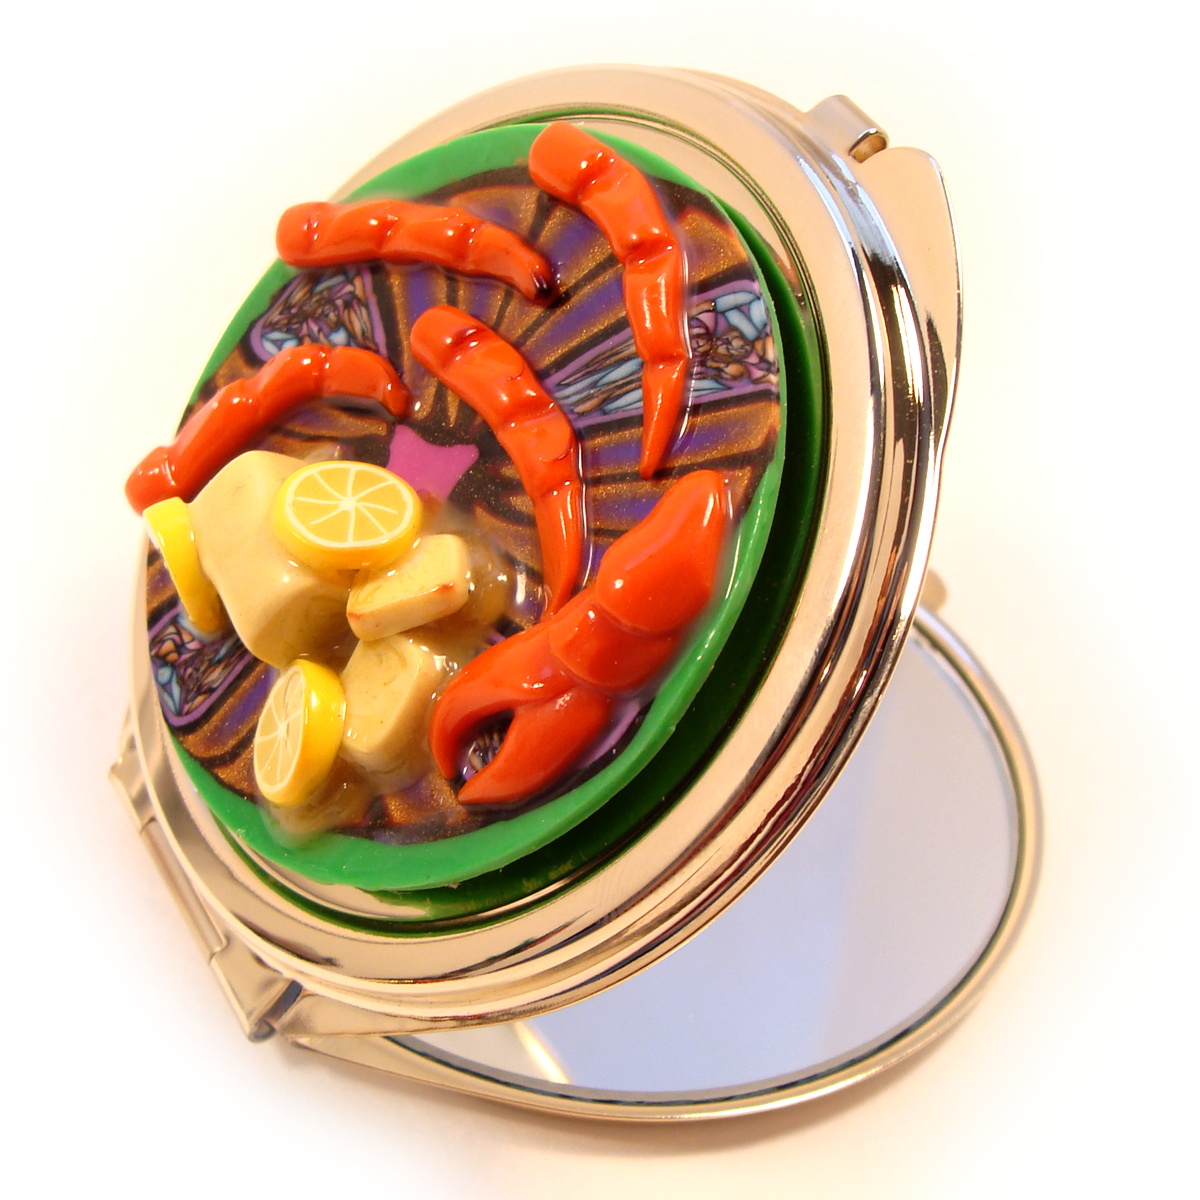 Crab claws and butter mirror compact